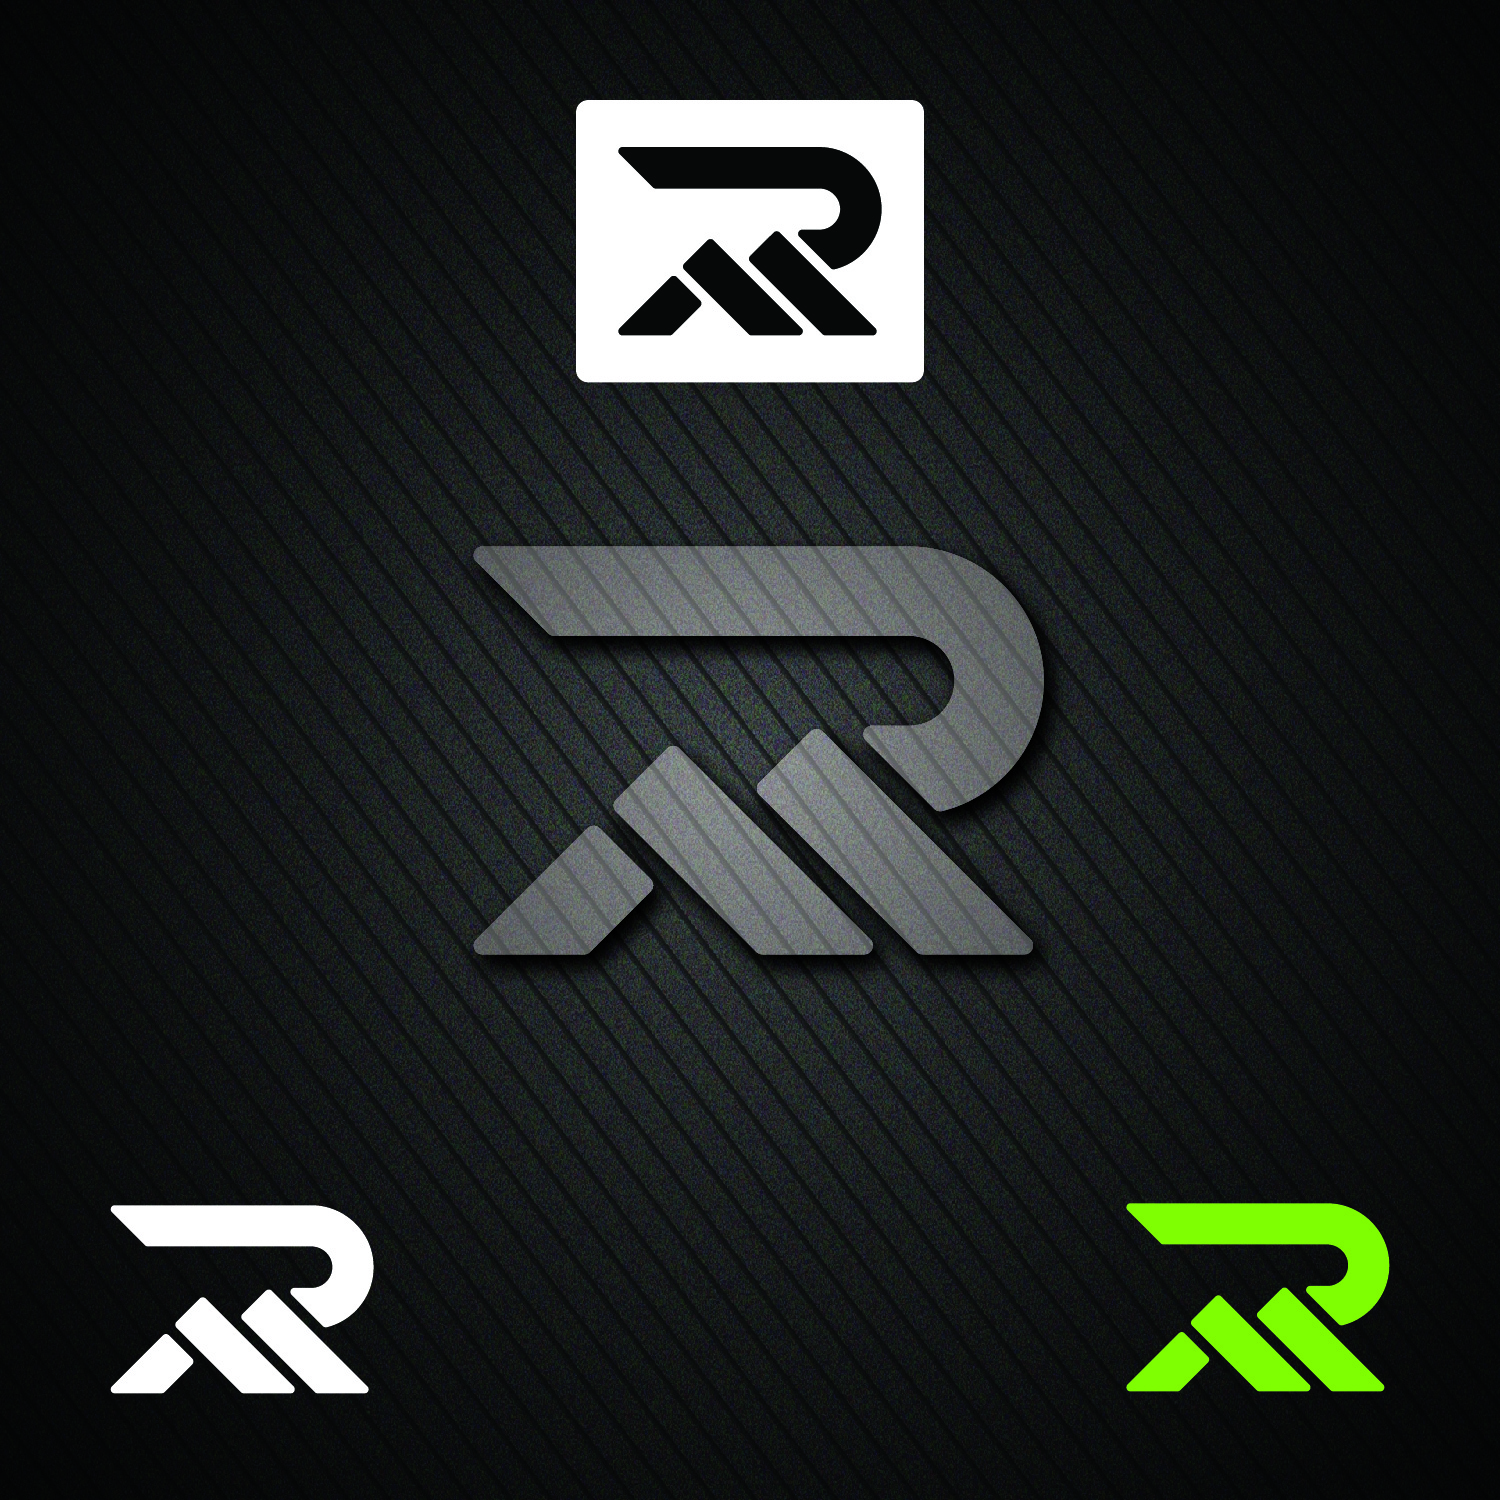 logo design for rm by riyan kusumo design 17436783 logo design for rm by riyan kusumo